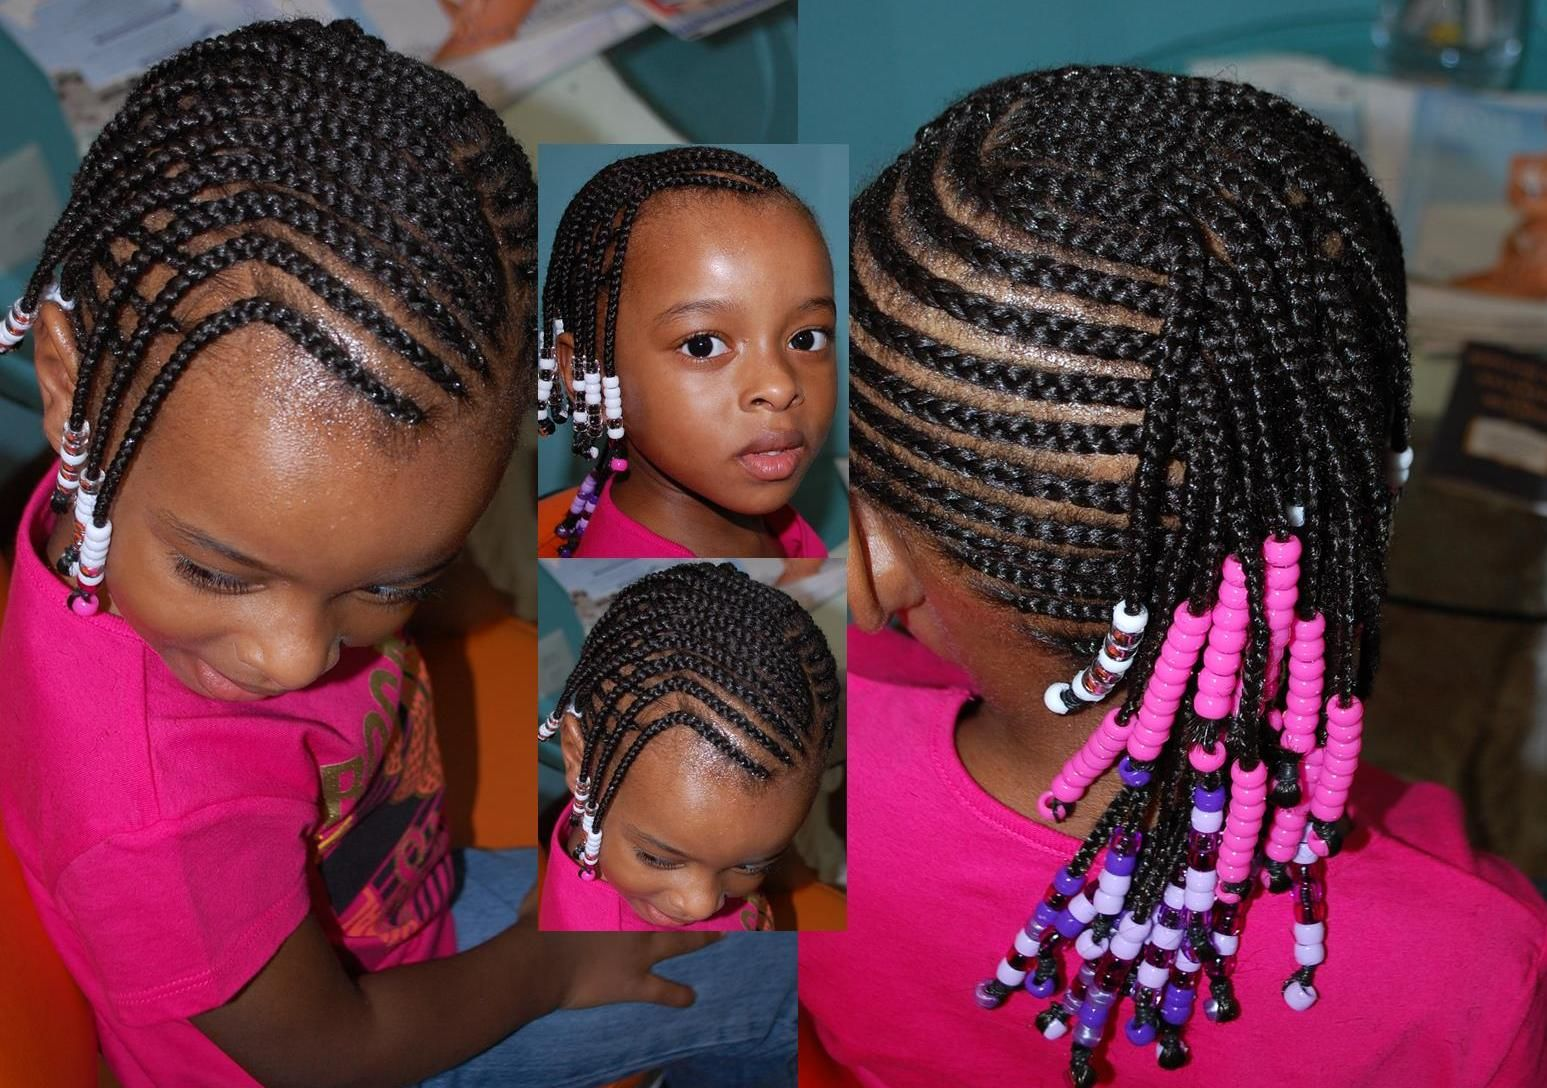 Hair Braids Salon Va We Produces The Highest Quality Braids Kids Hairstyles Kids Braided Hairstyles Hair Styles